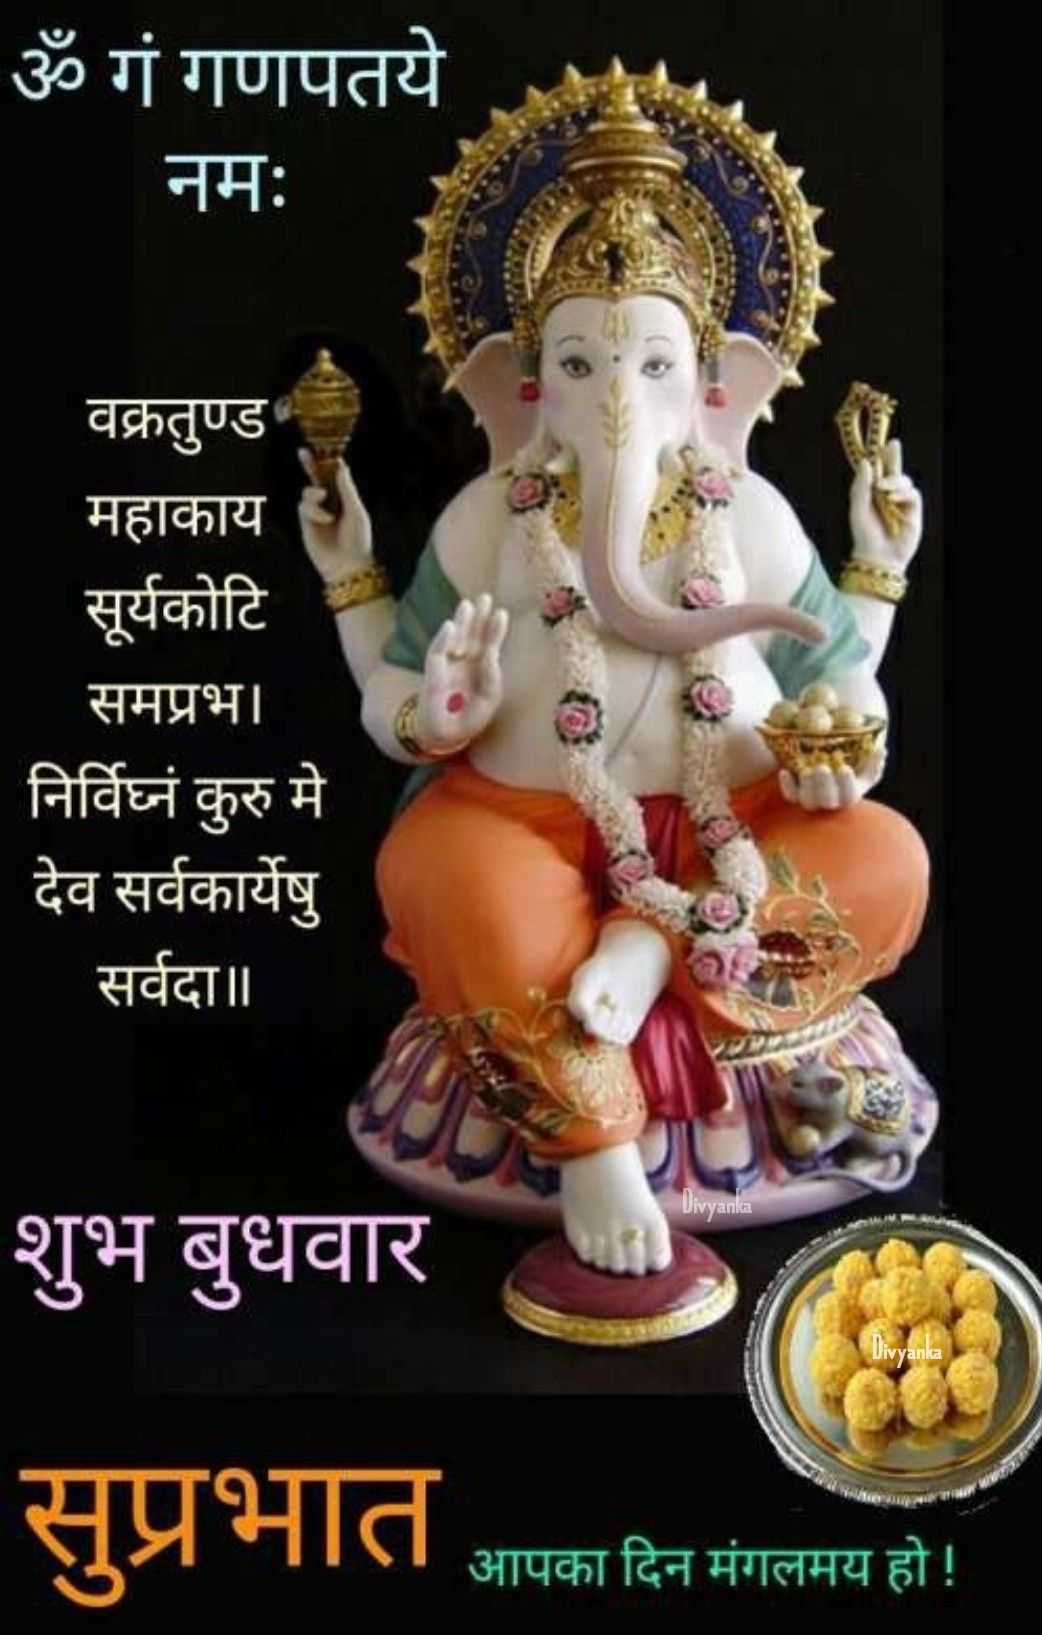 ganesh ji hindi messages good morning images